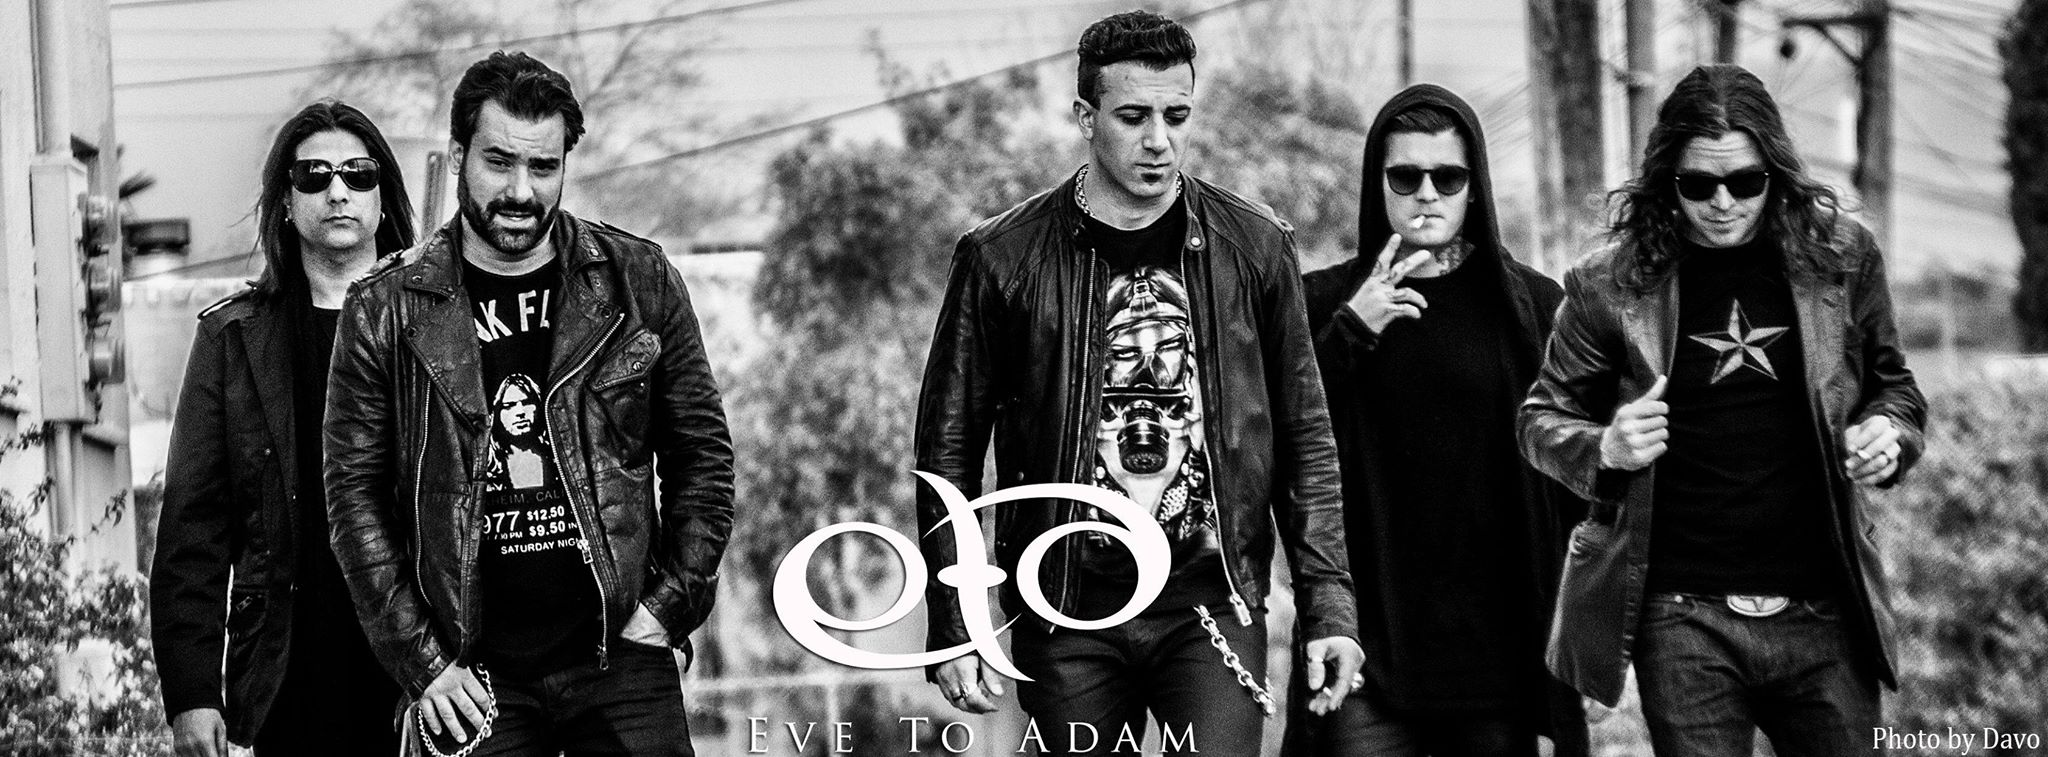 Eve To Adam Band